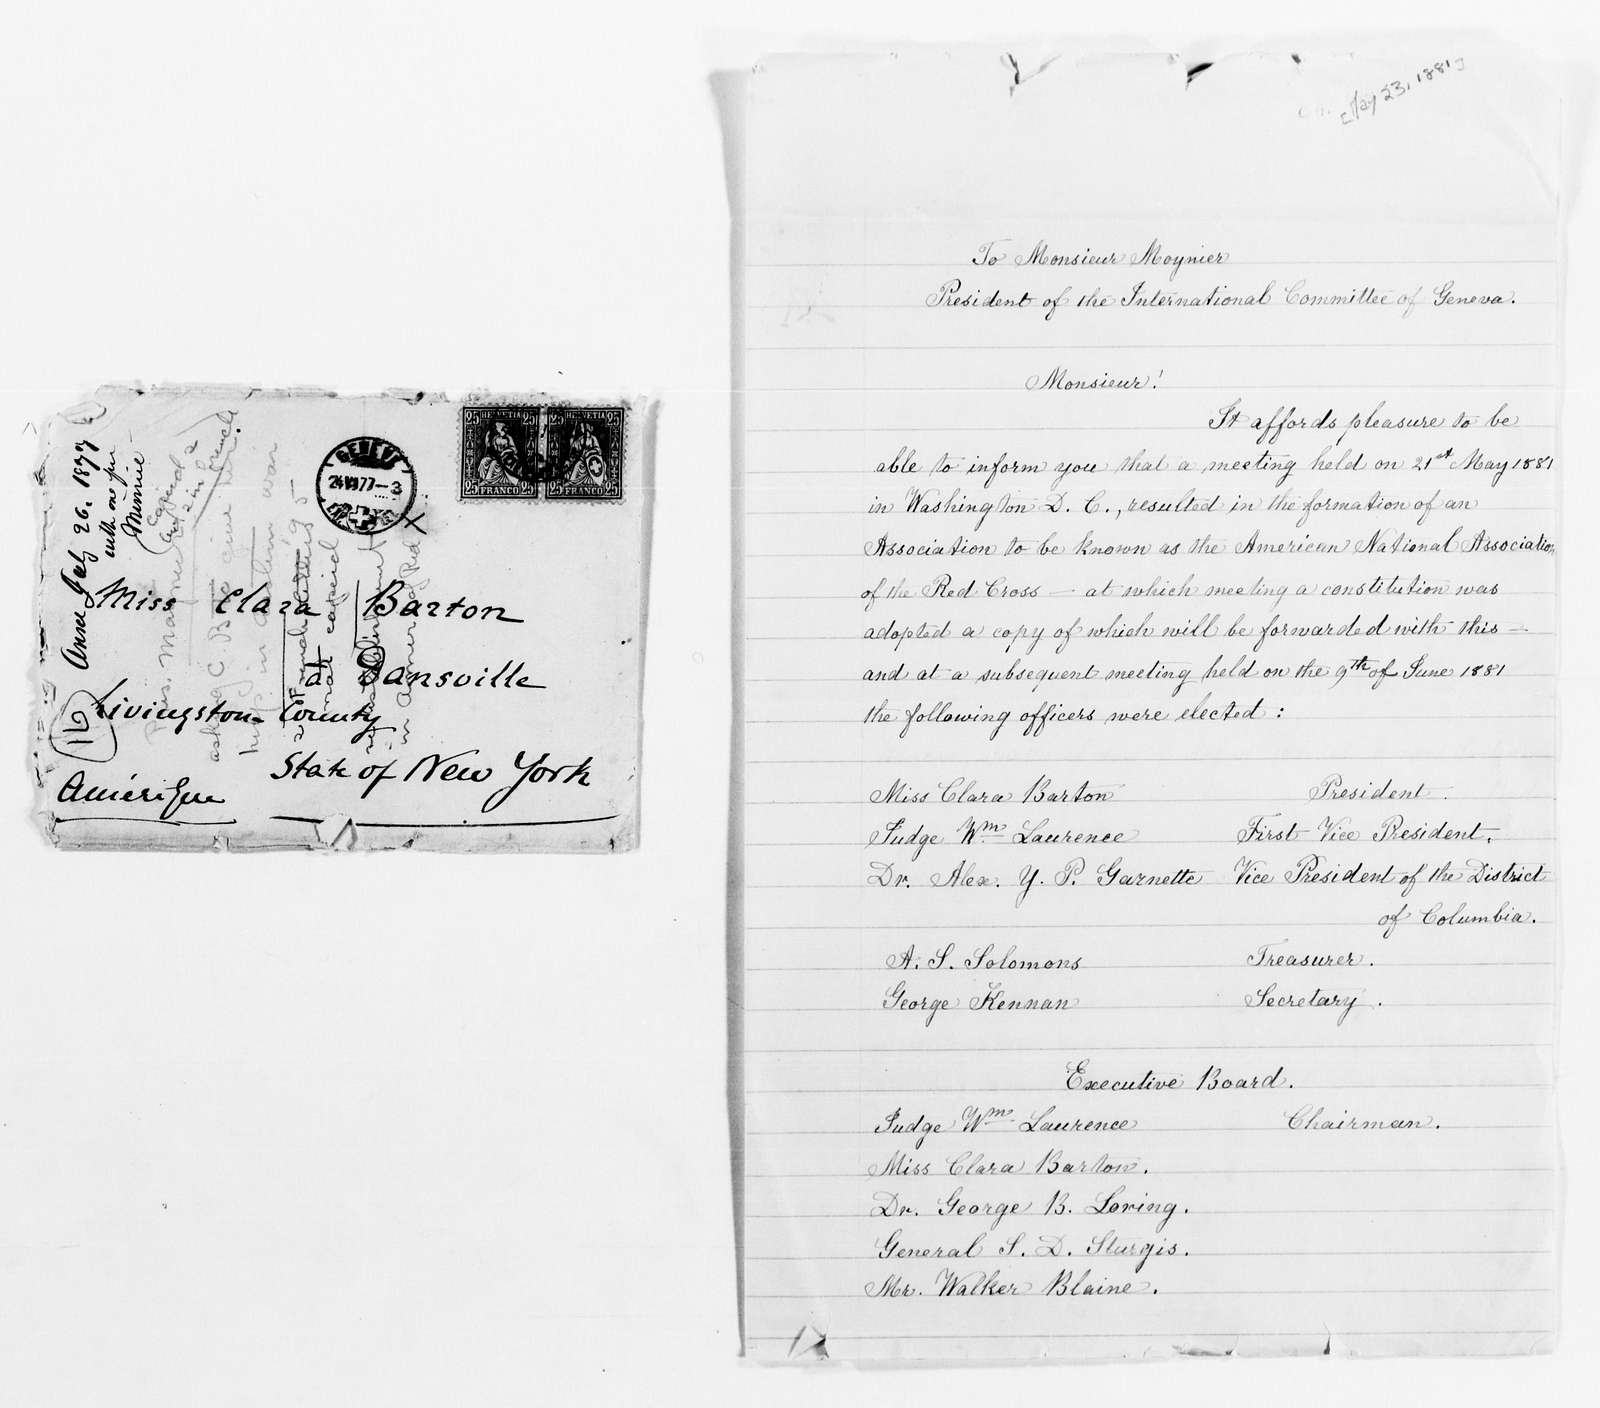 Clara Barton Papers: Red Cross File, 1863-1957; International Committee of the Red Cross, 1863-1919; Correspondence, 1877-1904, undated